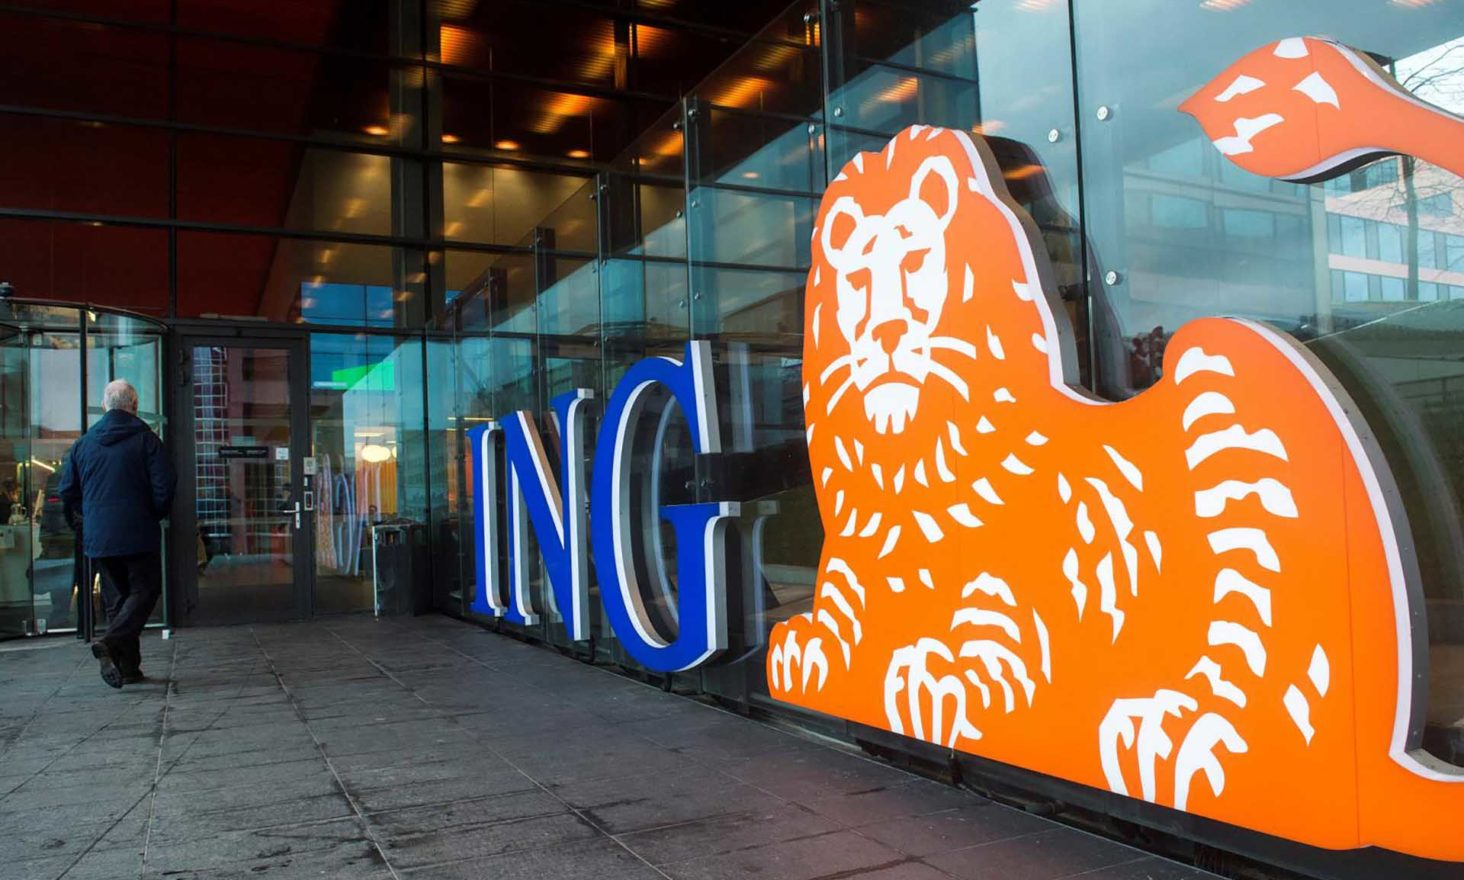 No Mainstream Adoption for Bitcoin According to ING